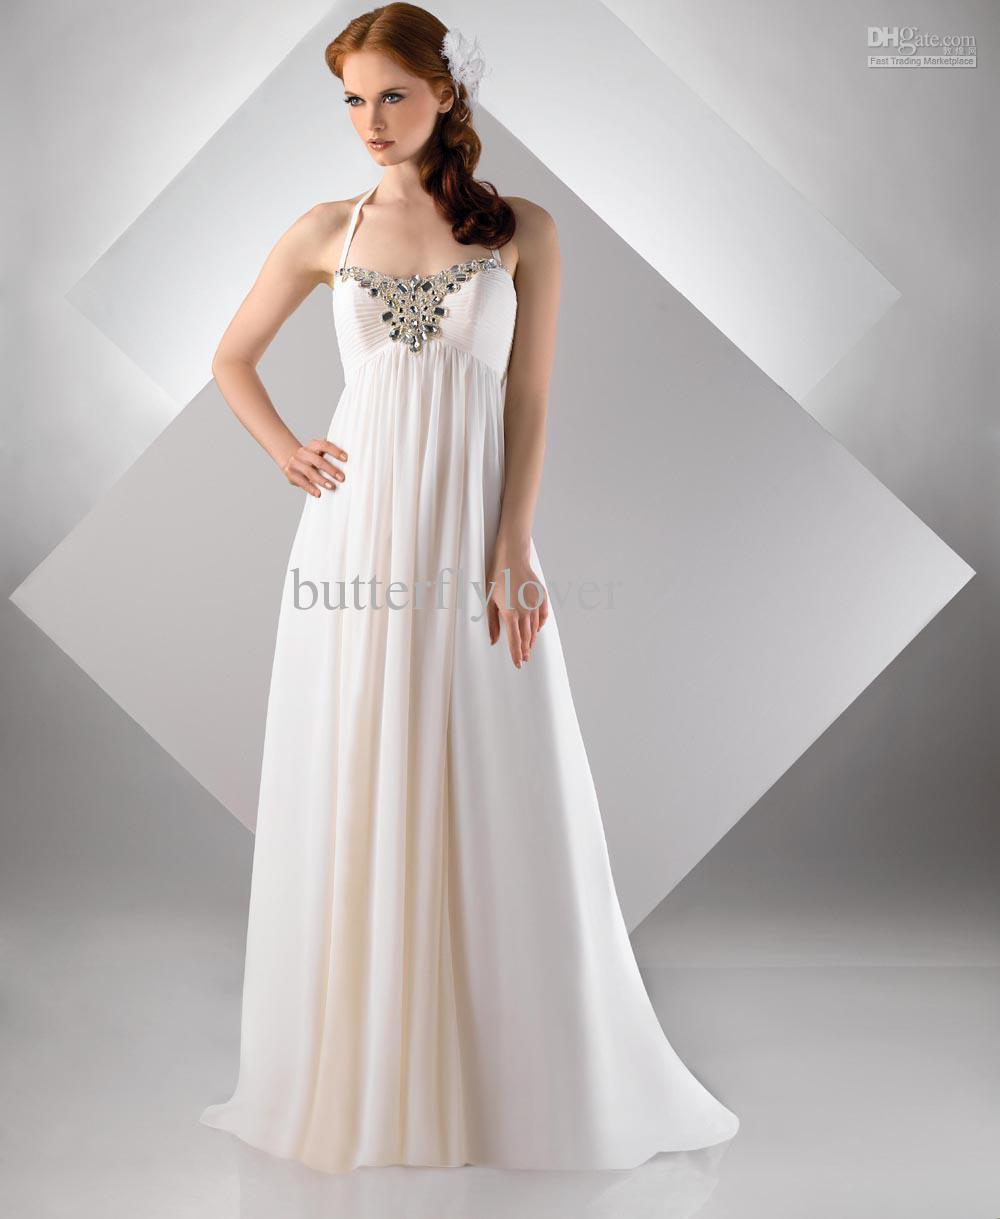 Maternity wedding dresses fantastical wedding stylings for Wedding dress for pregnant woman